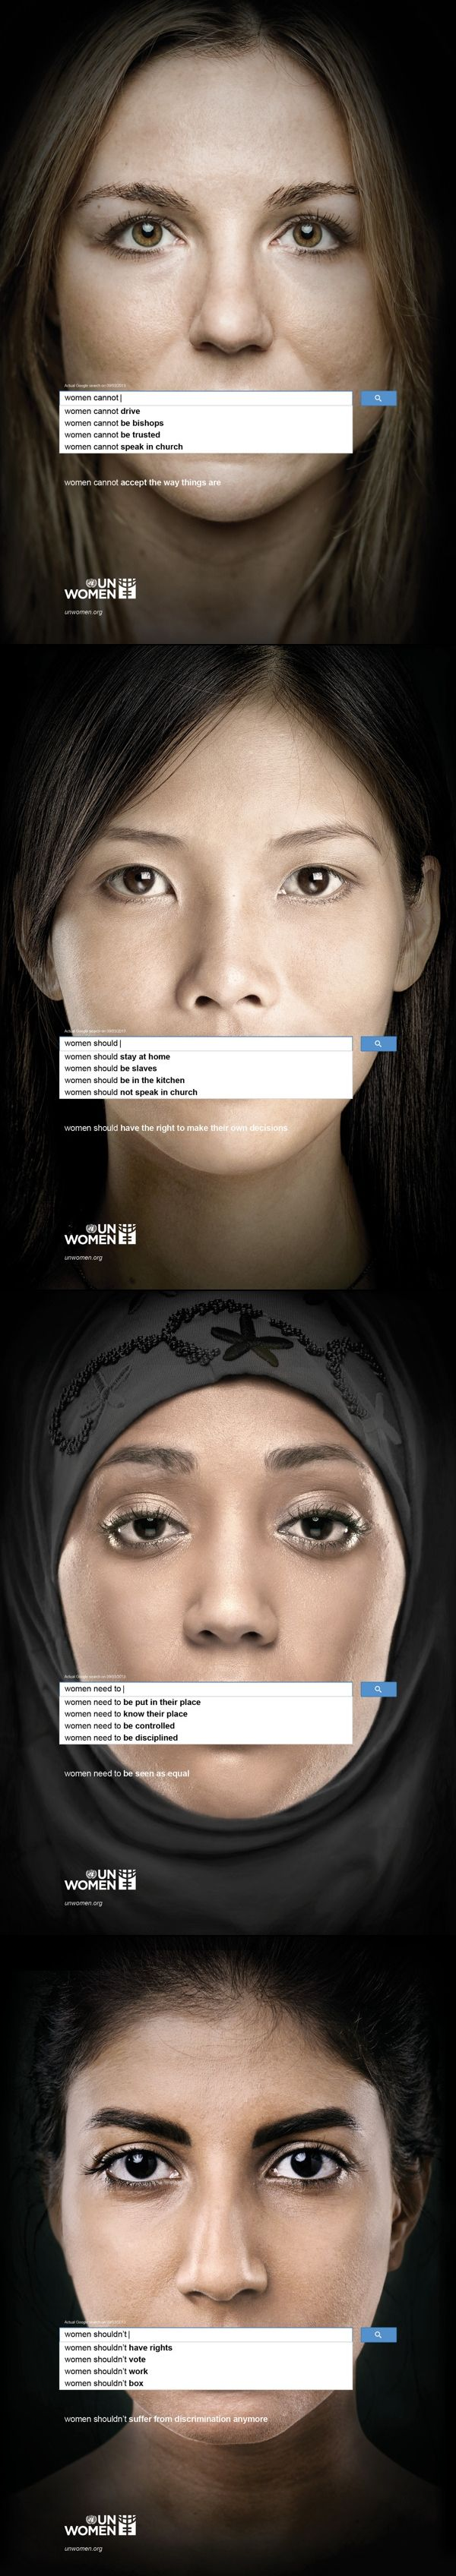 UN WOMEN | Auto Complete Truth | Advertising